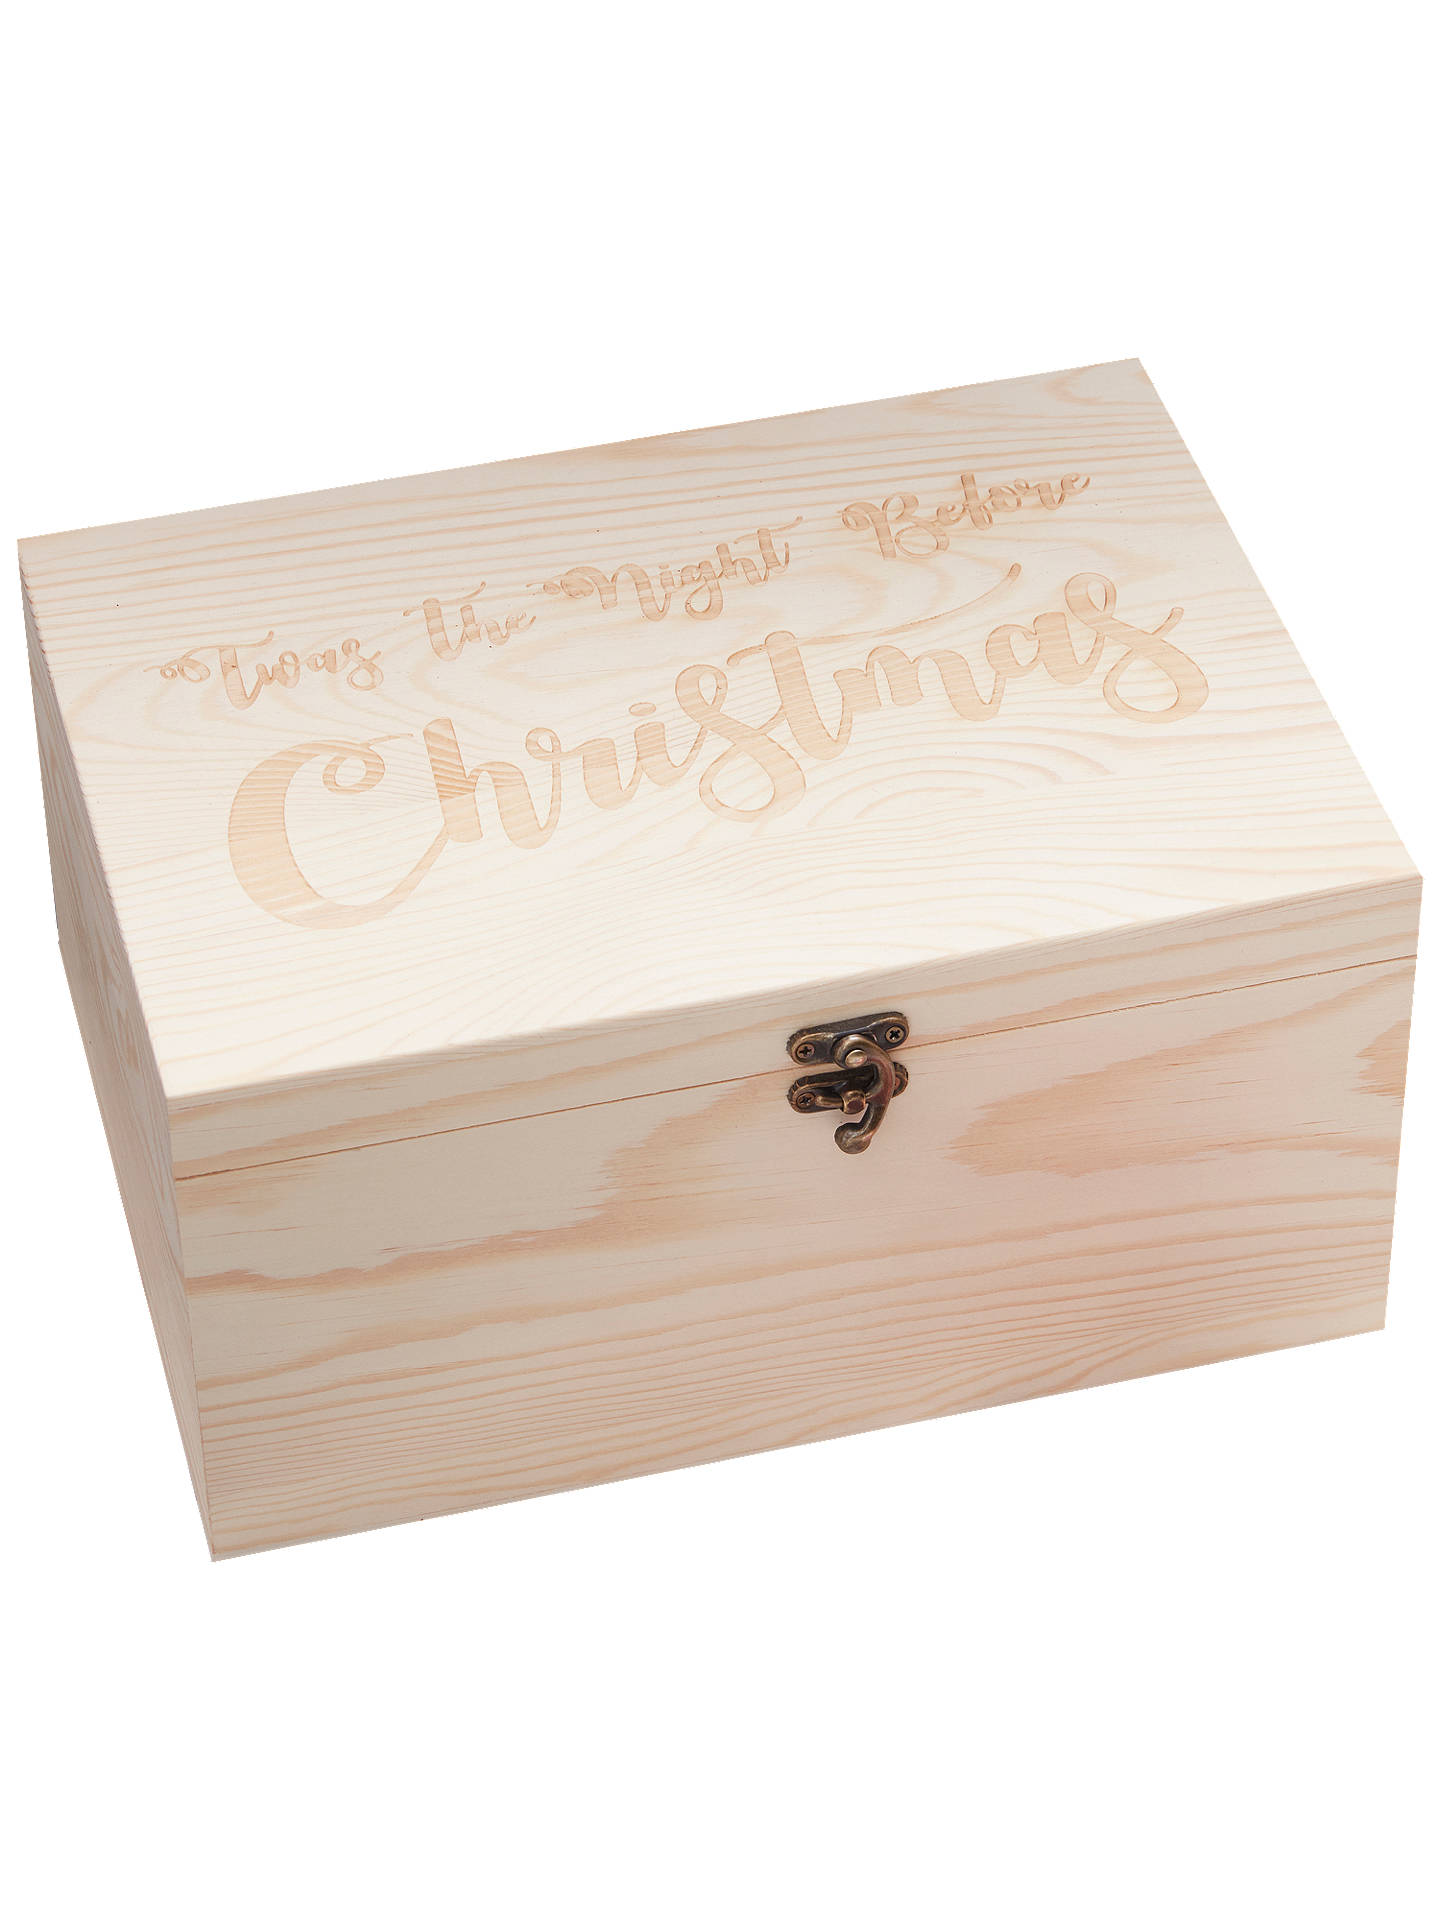 fe11d4755641 Buy Ginger Ray Christmas Eve Box Online at johnlewis.com ...